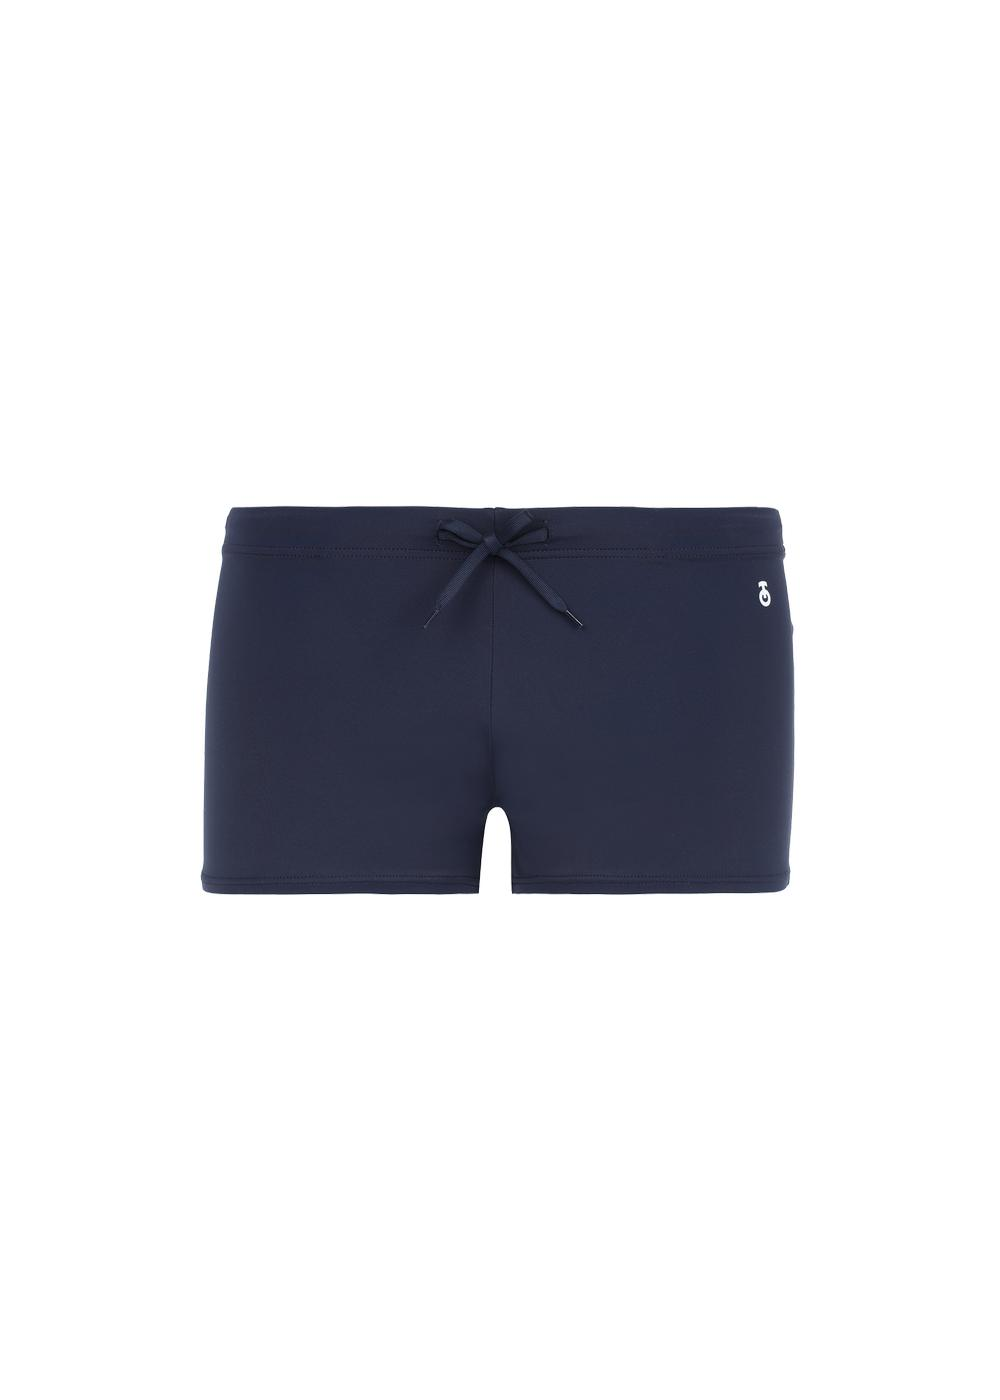 Men's Panama sports-like swim shorts